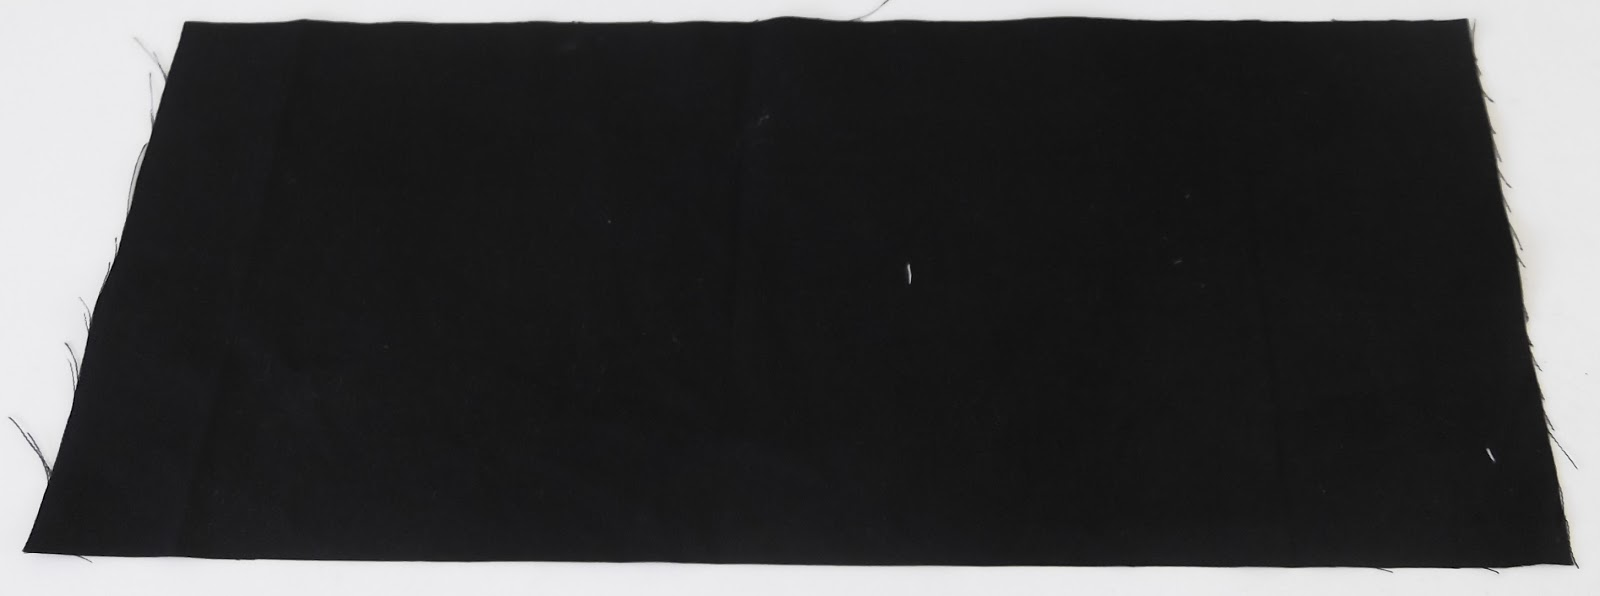 black fabric, a piece of black fabric